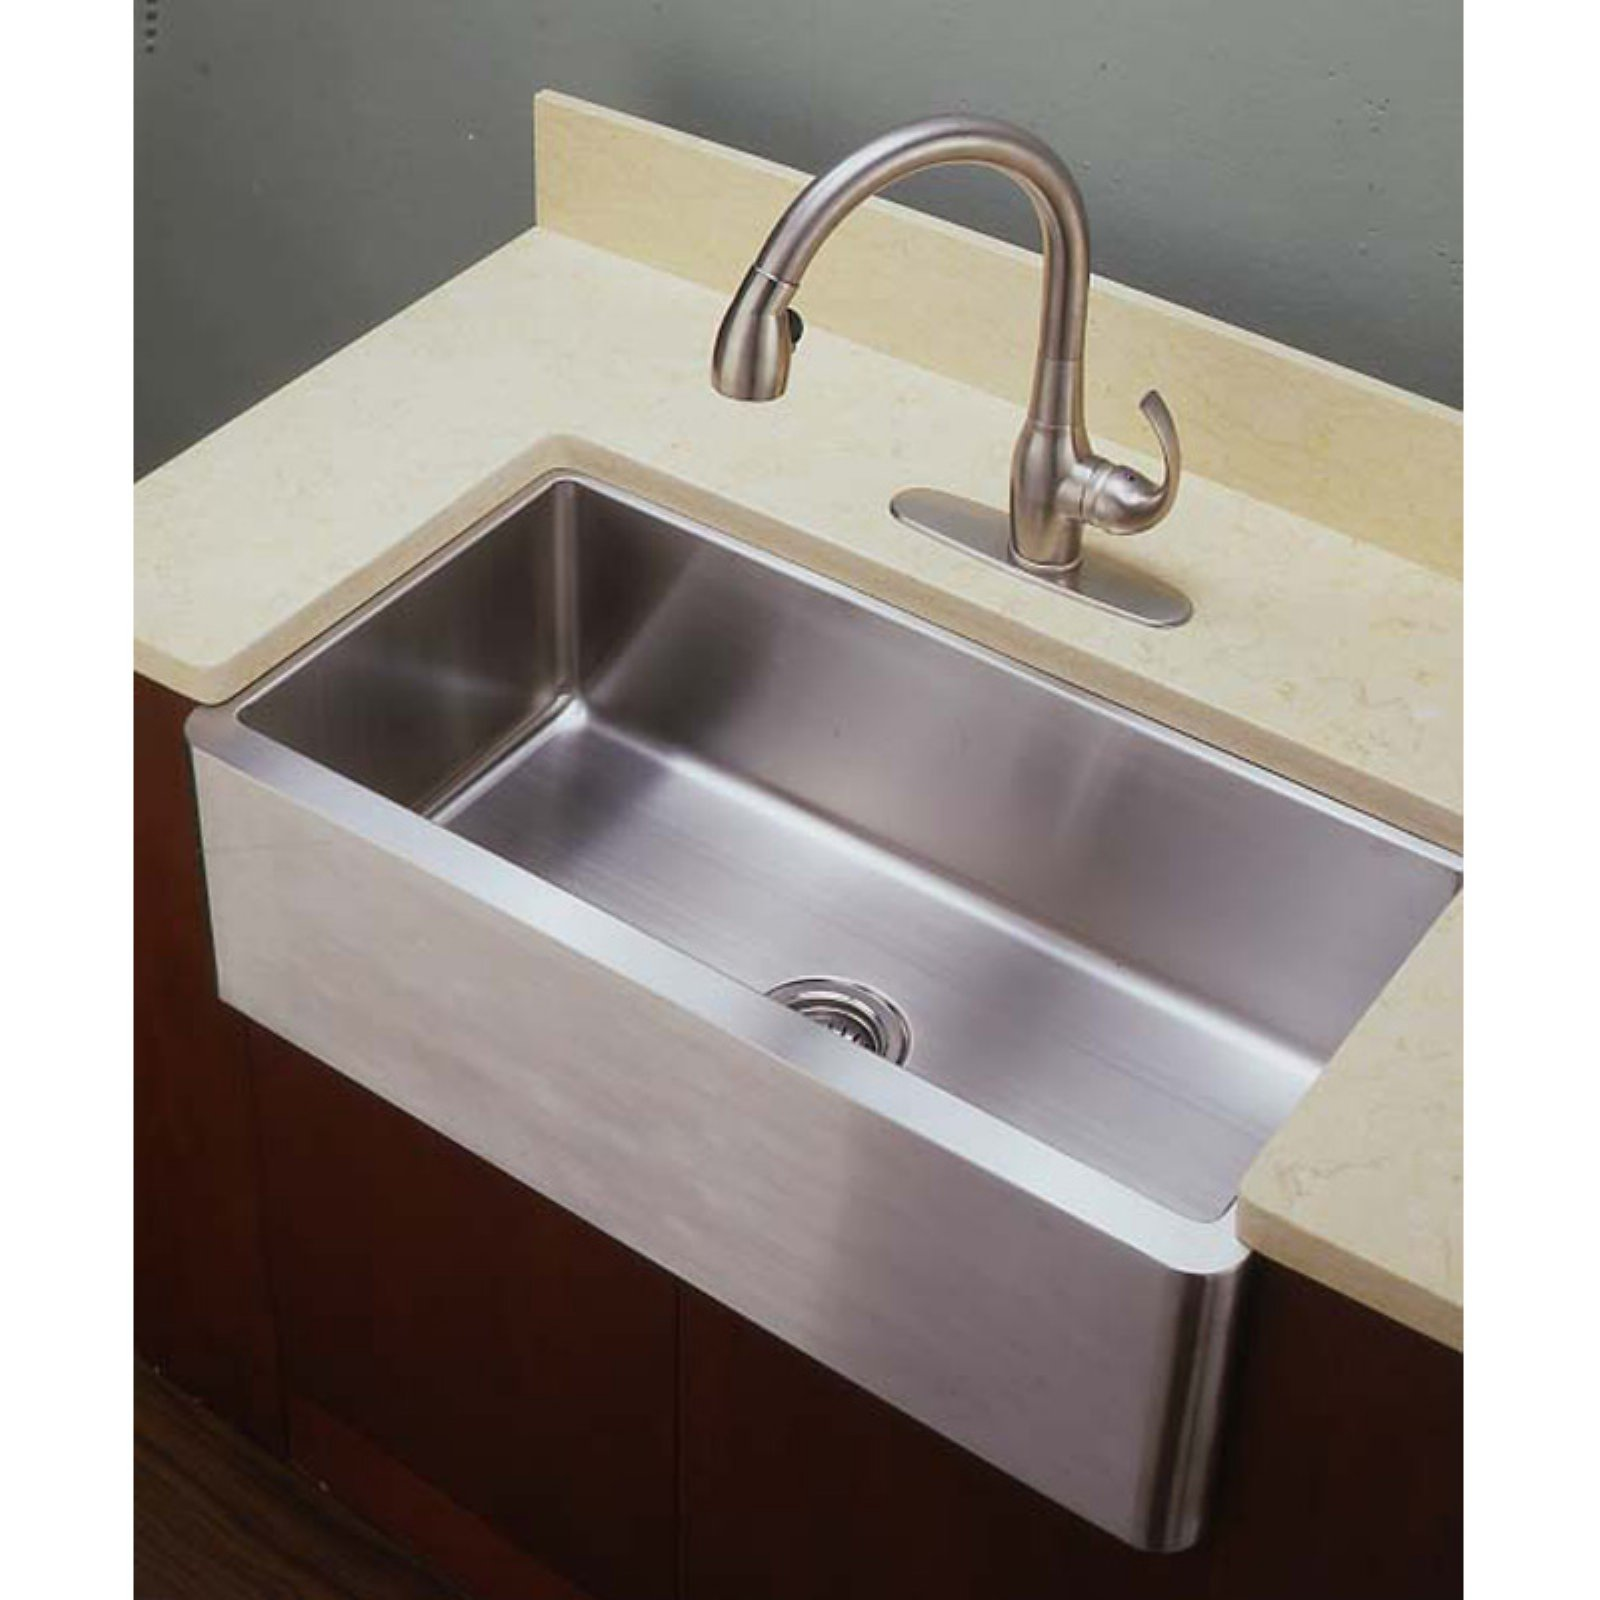 World Imports Empire Industries LF33 Single Bowl Farmhouse Stainless Steel Kitchen Sink